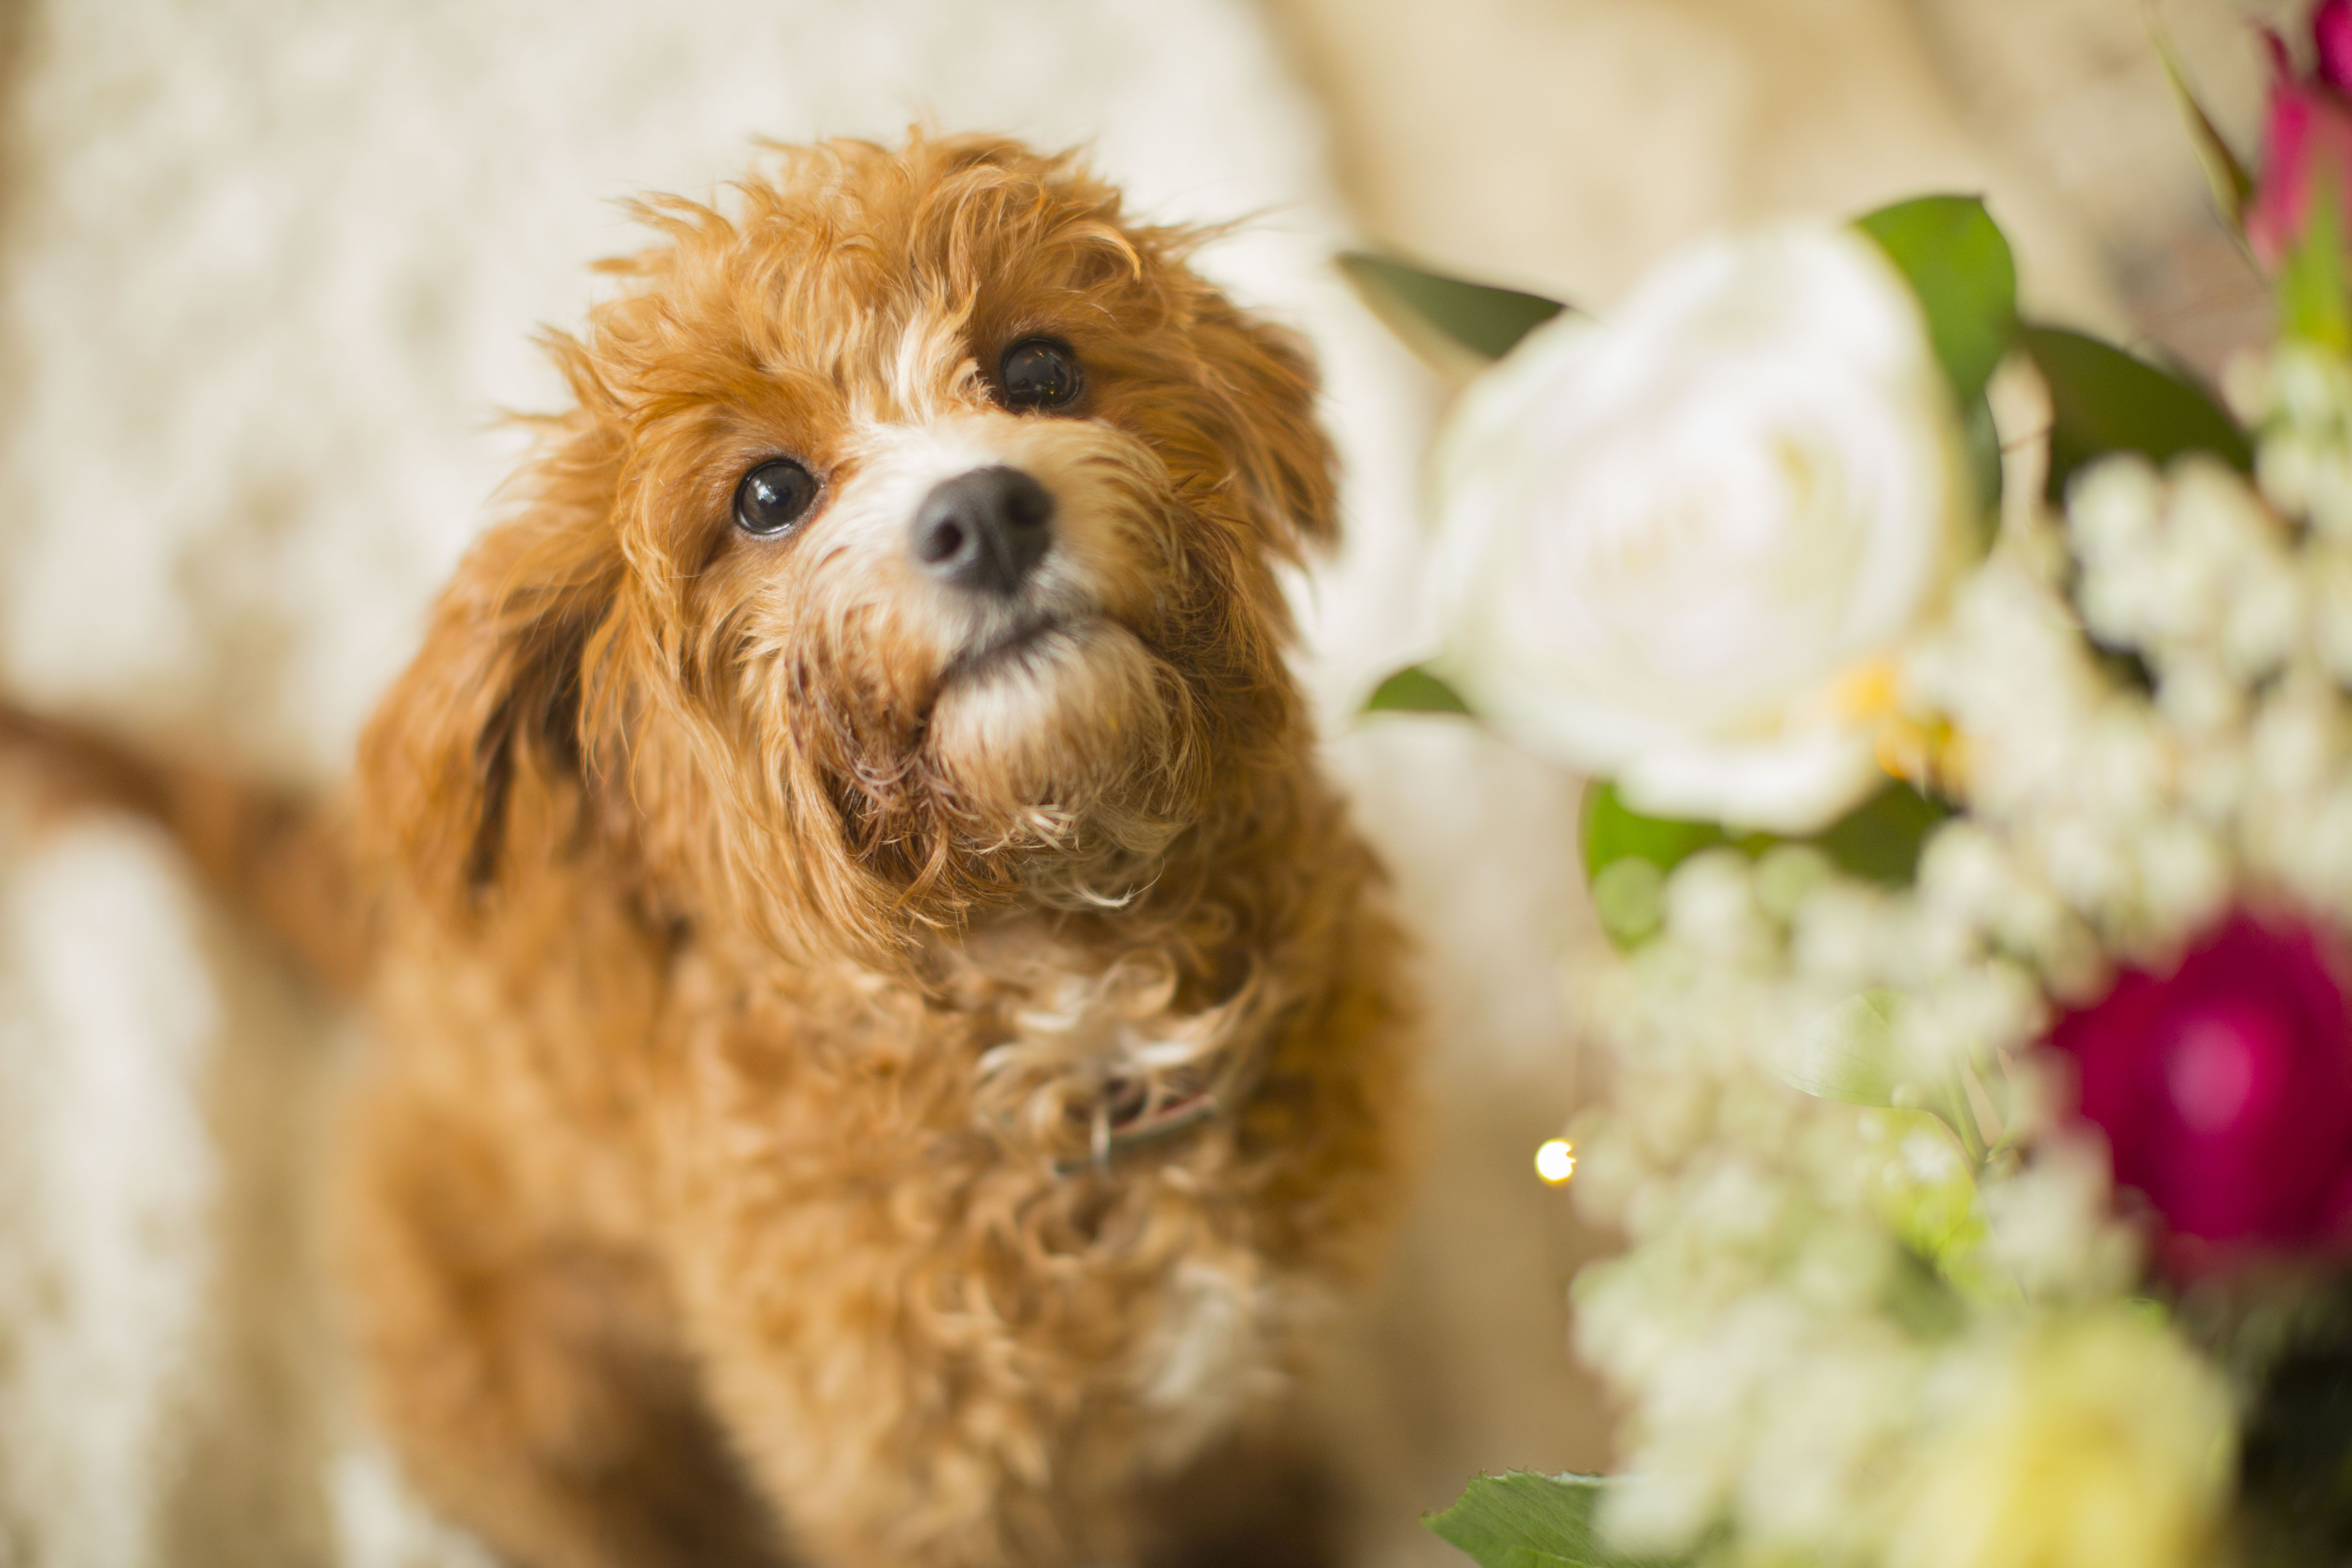 Raggy Dogs Specialises In Breeding Rearing And Training Exquisite Red Toy Cavoodle Puppies In Sydney Australia Eac Therapy Dogs Sporting Dogs Skill Training